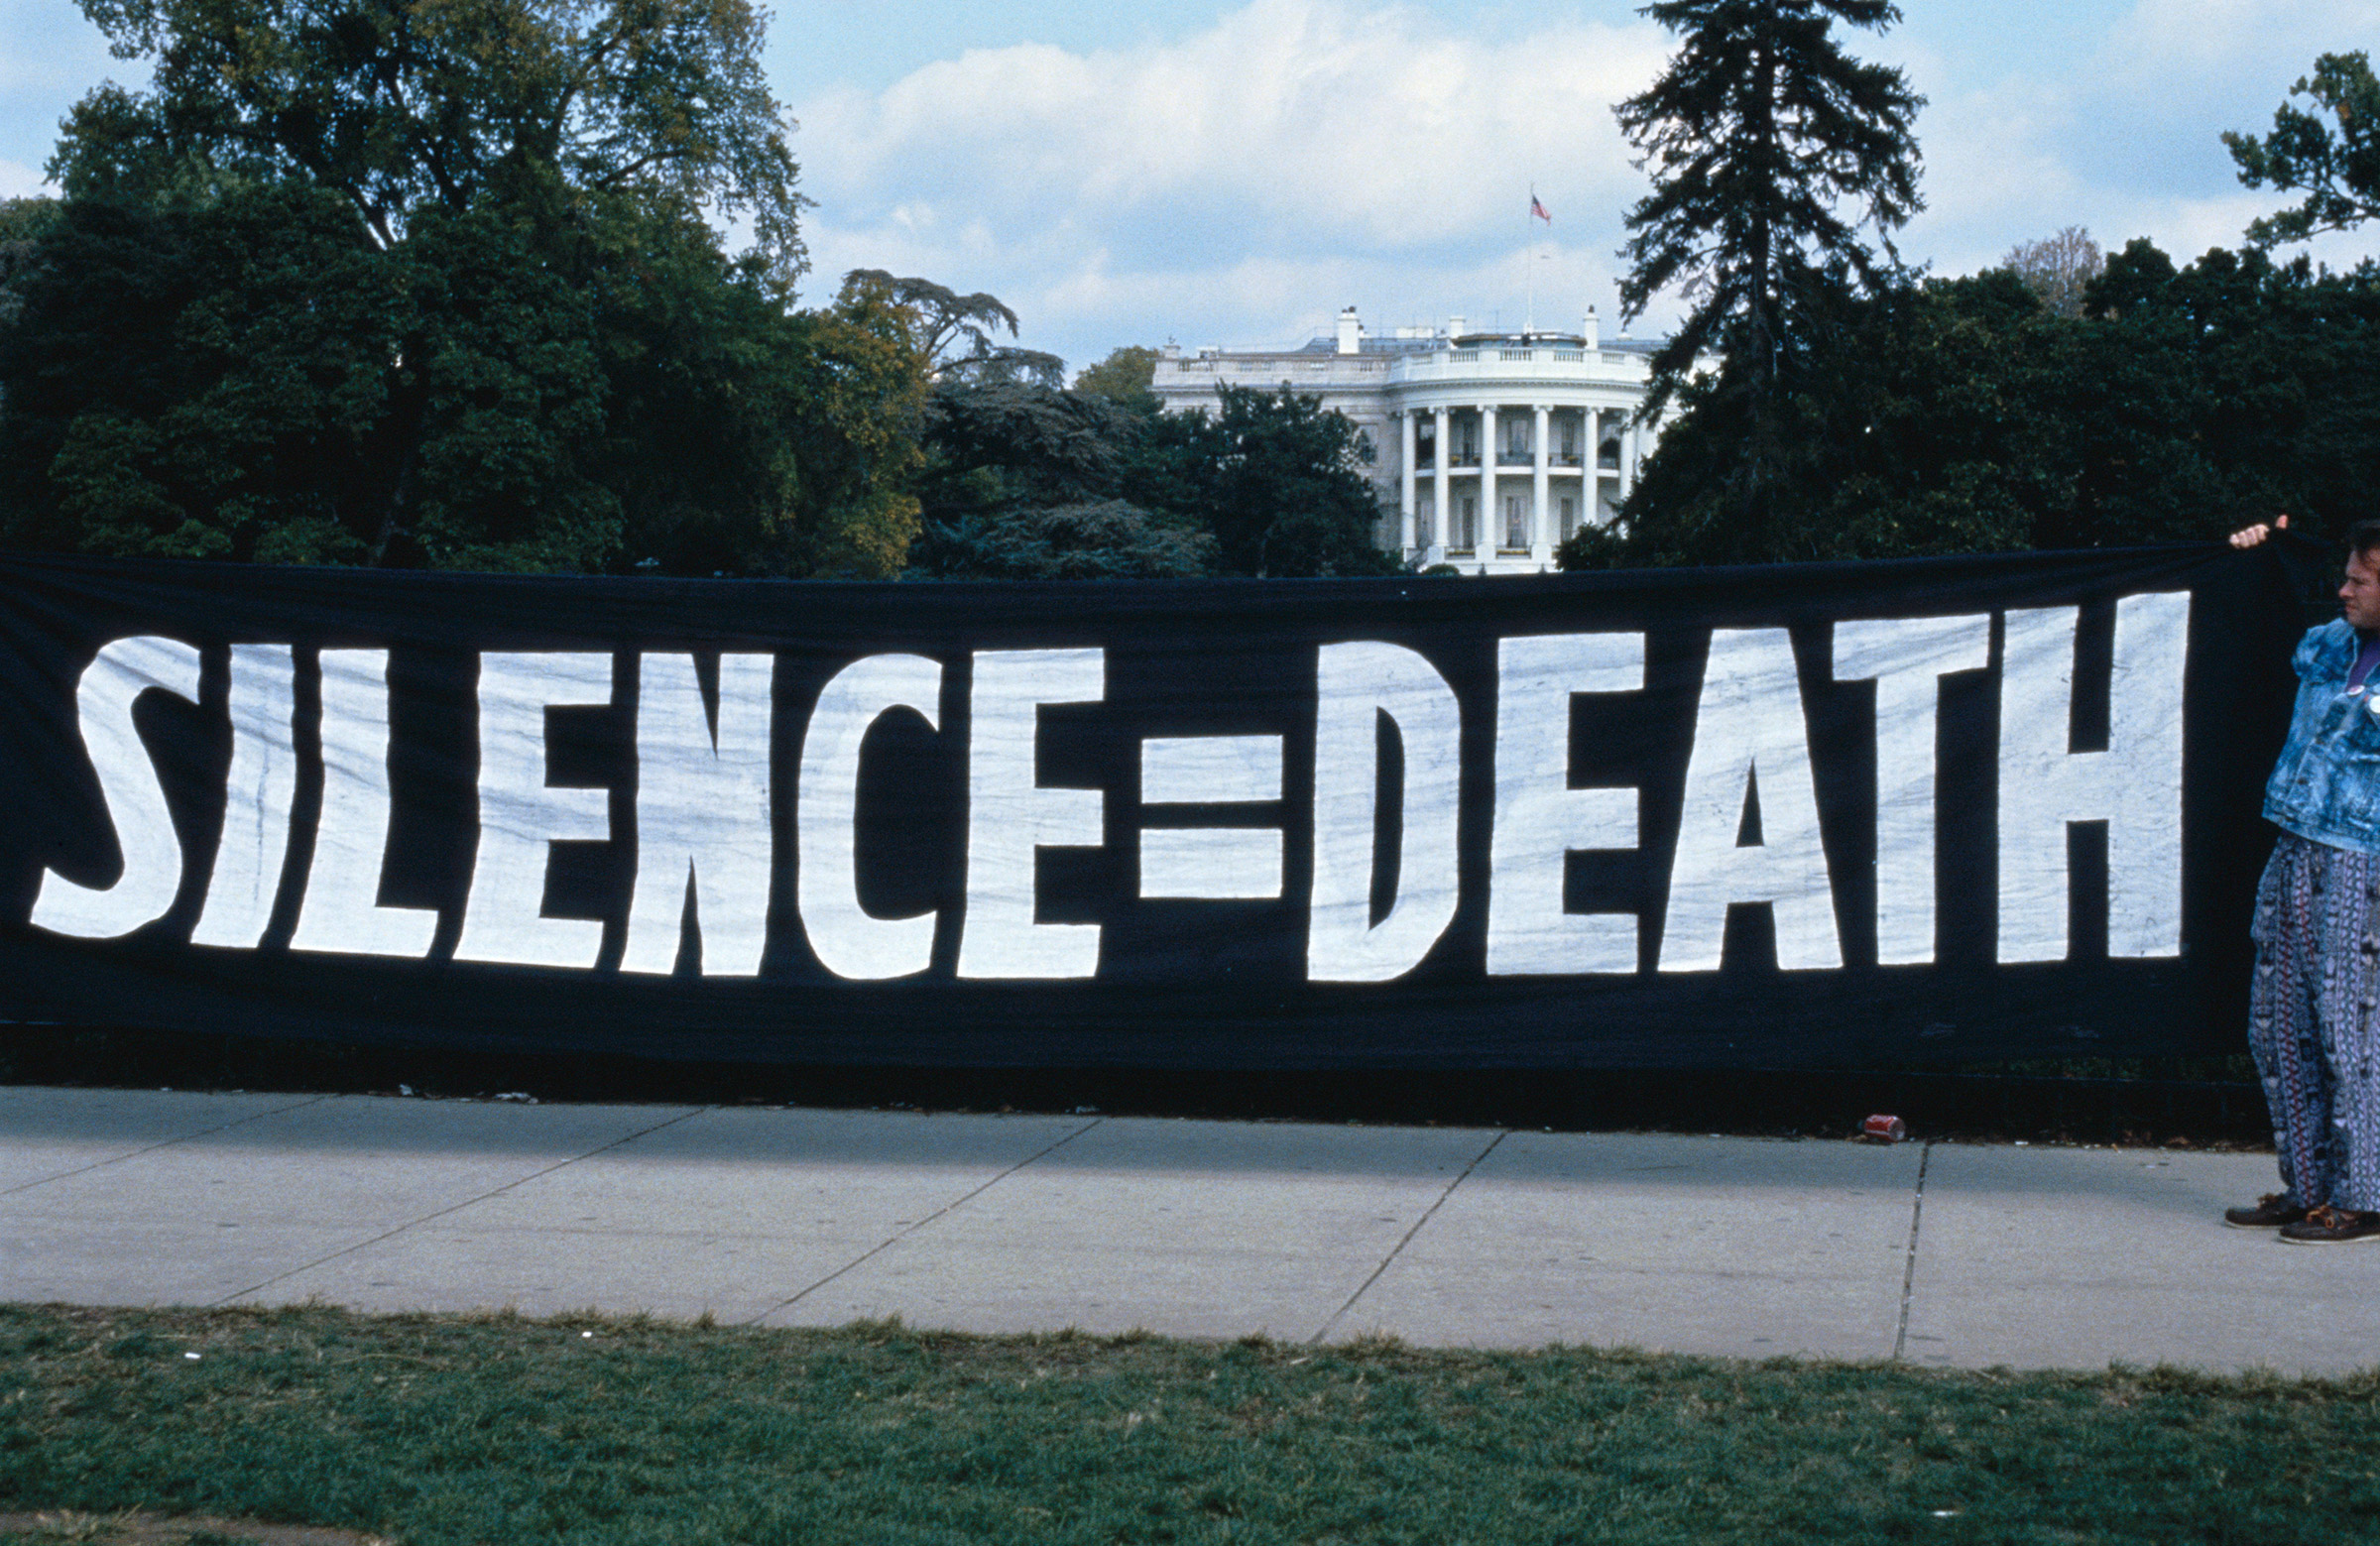 ACT UP activists hang a banner outside of the White House in Washington, D.C.